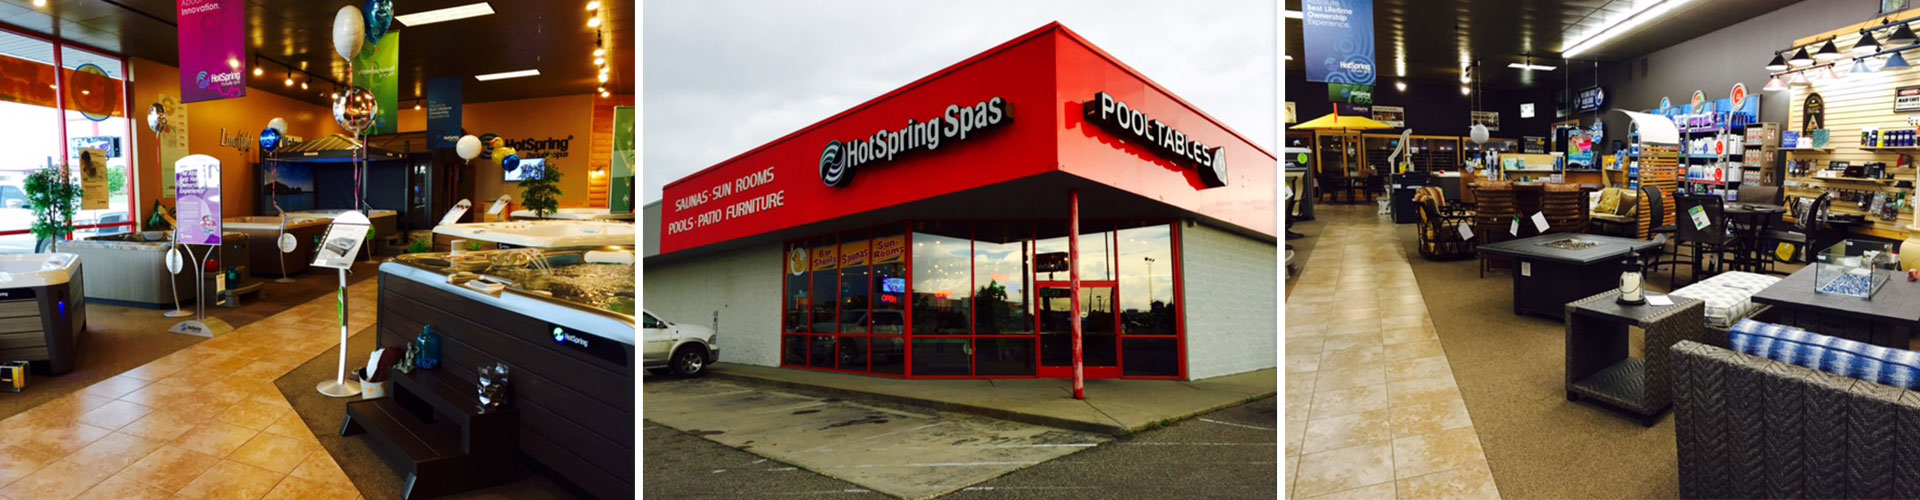 West Fargo Showroom Hotspring Spas And Pool Tables 2